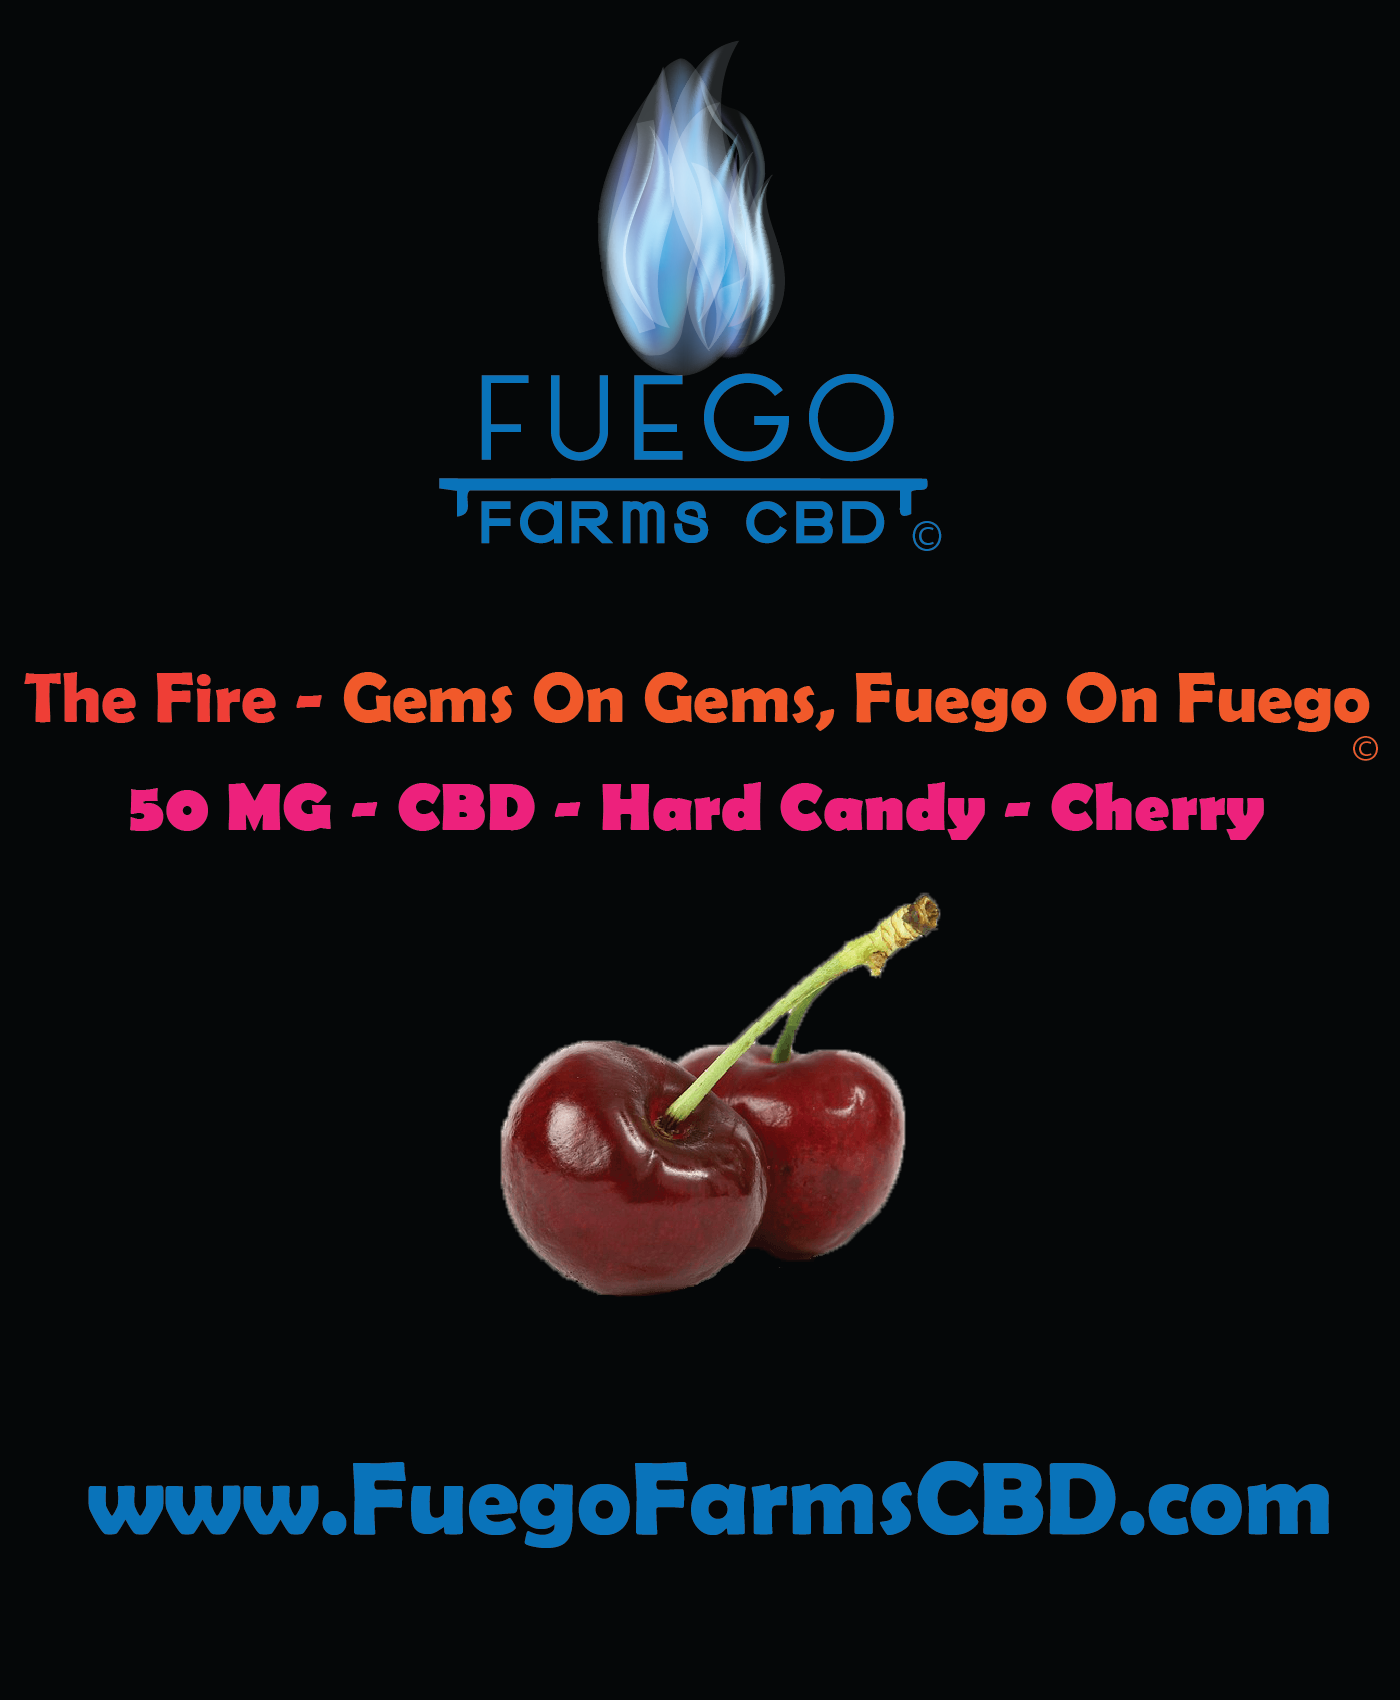 50 MG - Hard Candy - Gemmy Gems - The Fire - Gems on Gems, Fuego on